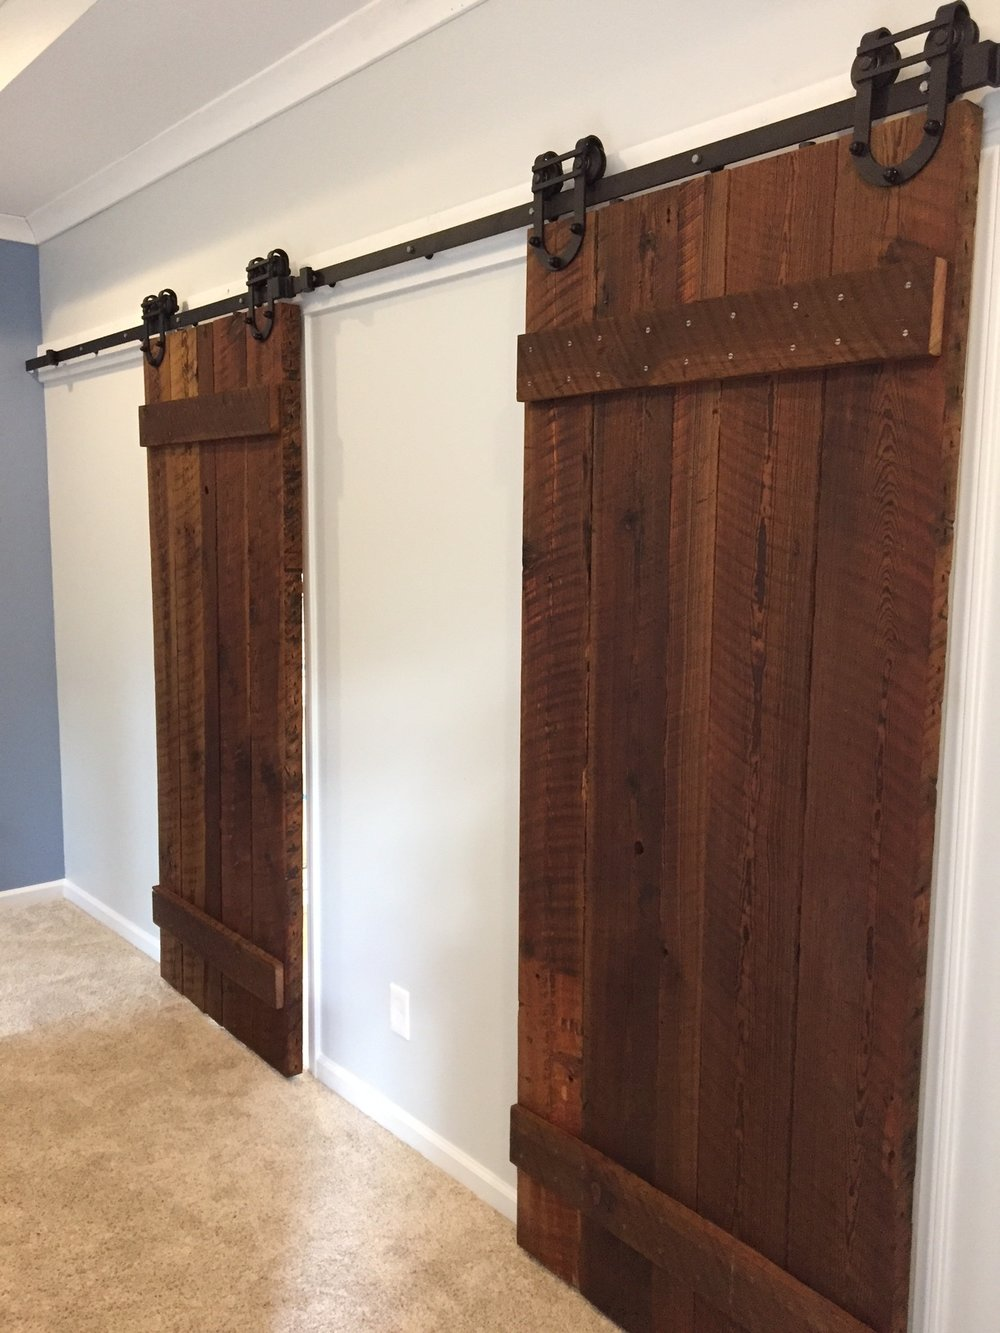 Bathroom & Closet doors covered by Georgia Tech Tower repurposed lumber.